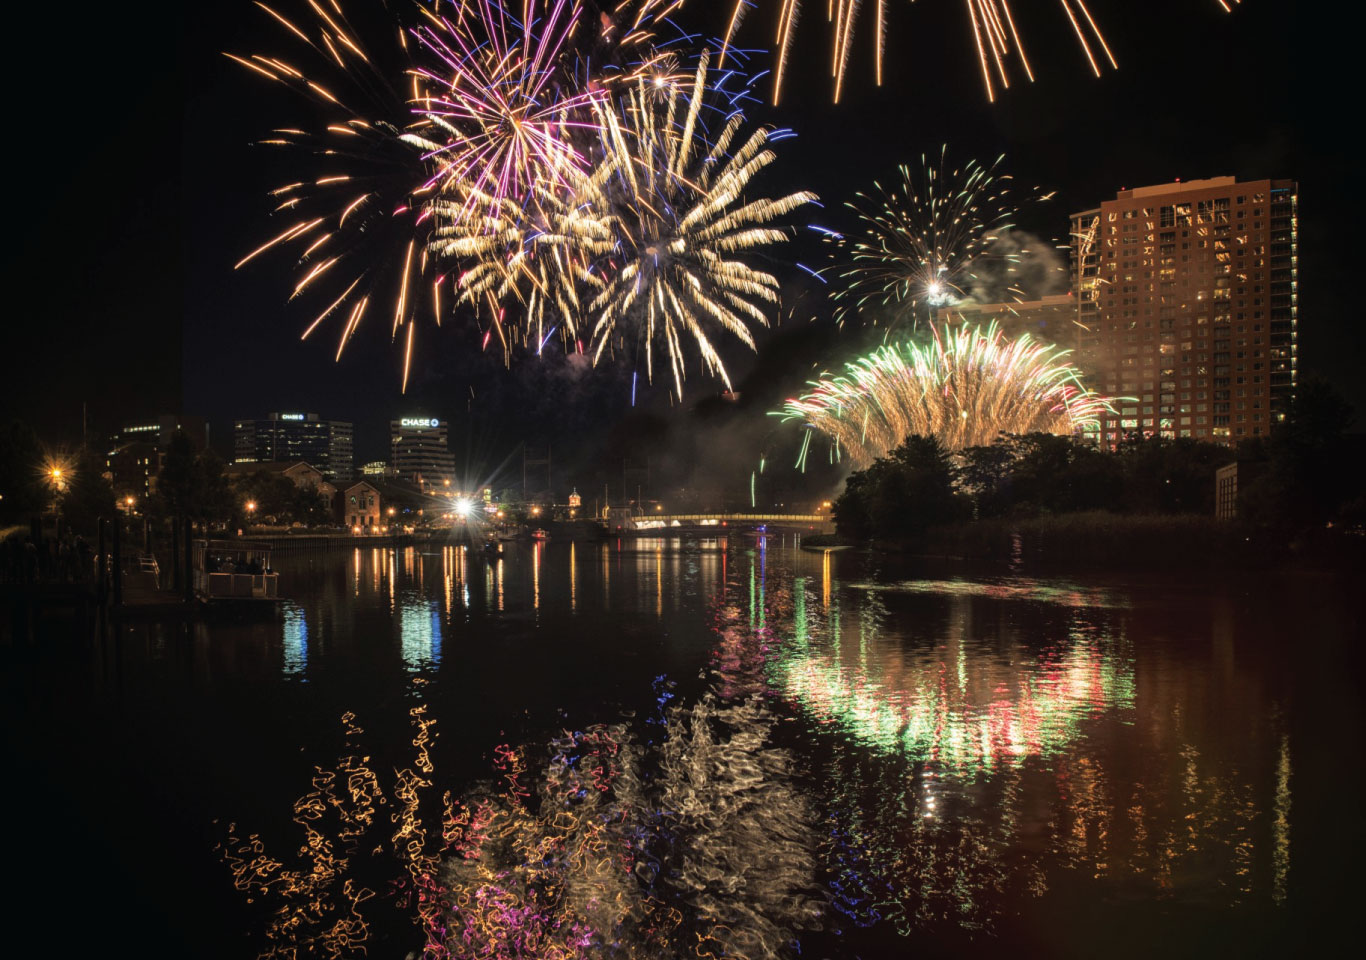 Mayor Purzycki Invites Citizens to Celebrate the 4th of July with Fireworks and Activities Along the Christina Riverfront